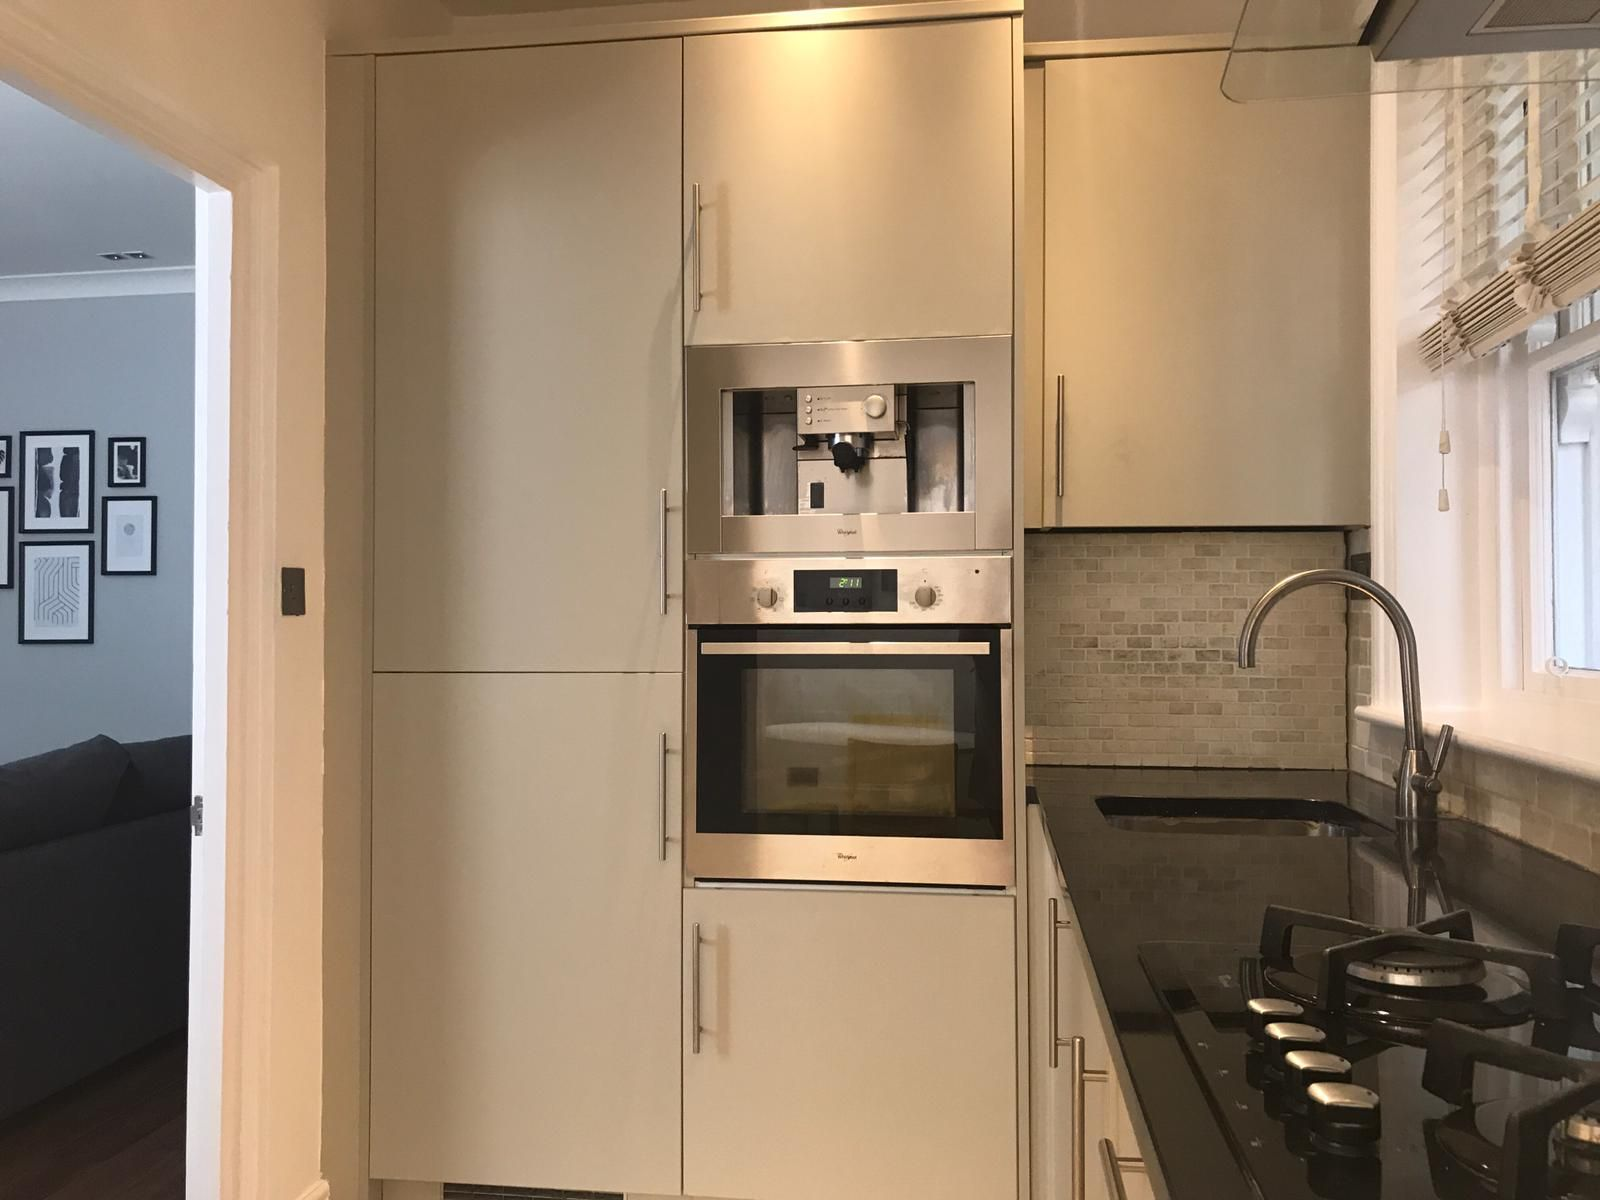 2 bedroom flat flat/apartment To Let in London - Kitchen with integrated coffee machine